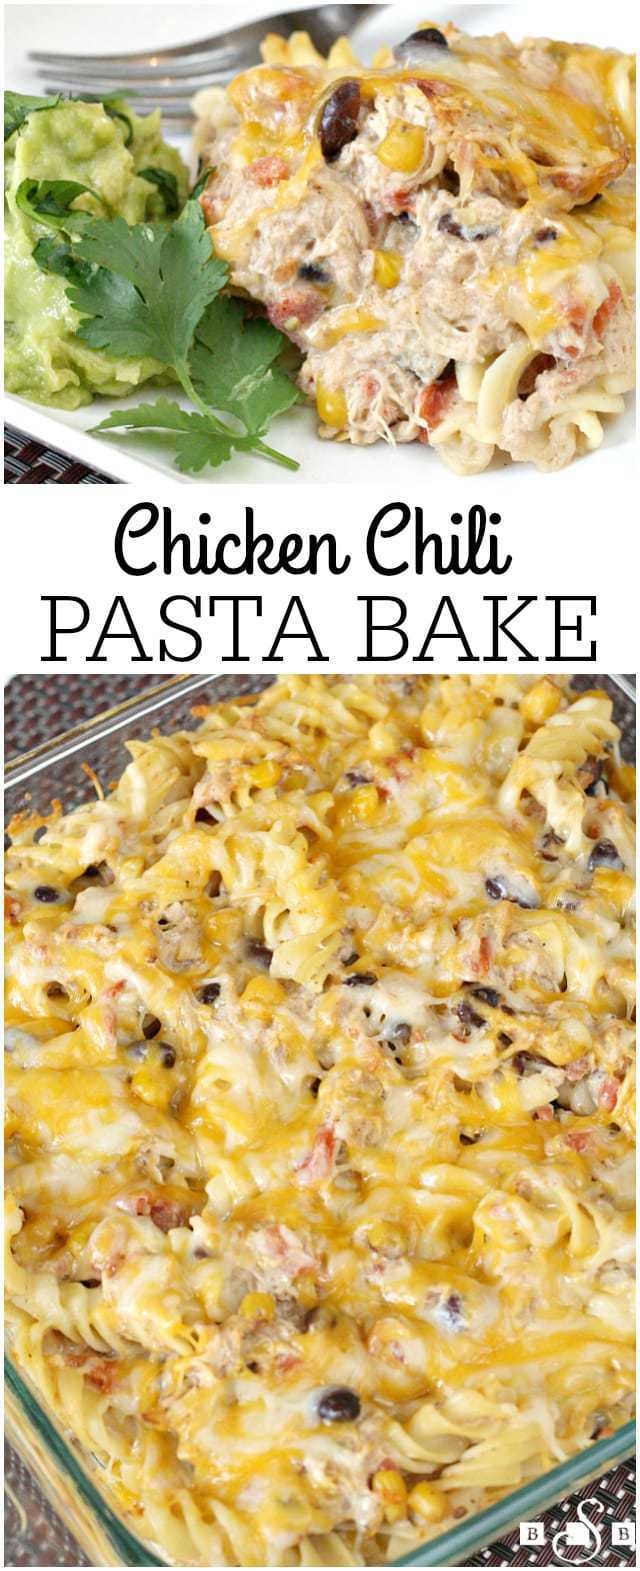 From the original Chicken Chili recipe, I created a Chicken Chili Pasta Bake and also a delicious Chicken Chili salad. Add a few garnishes and your meal is complete!